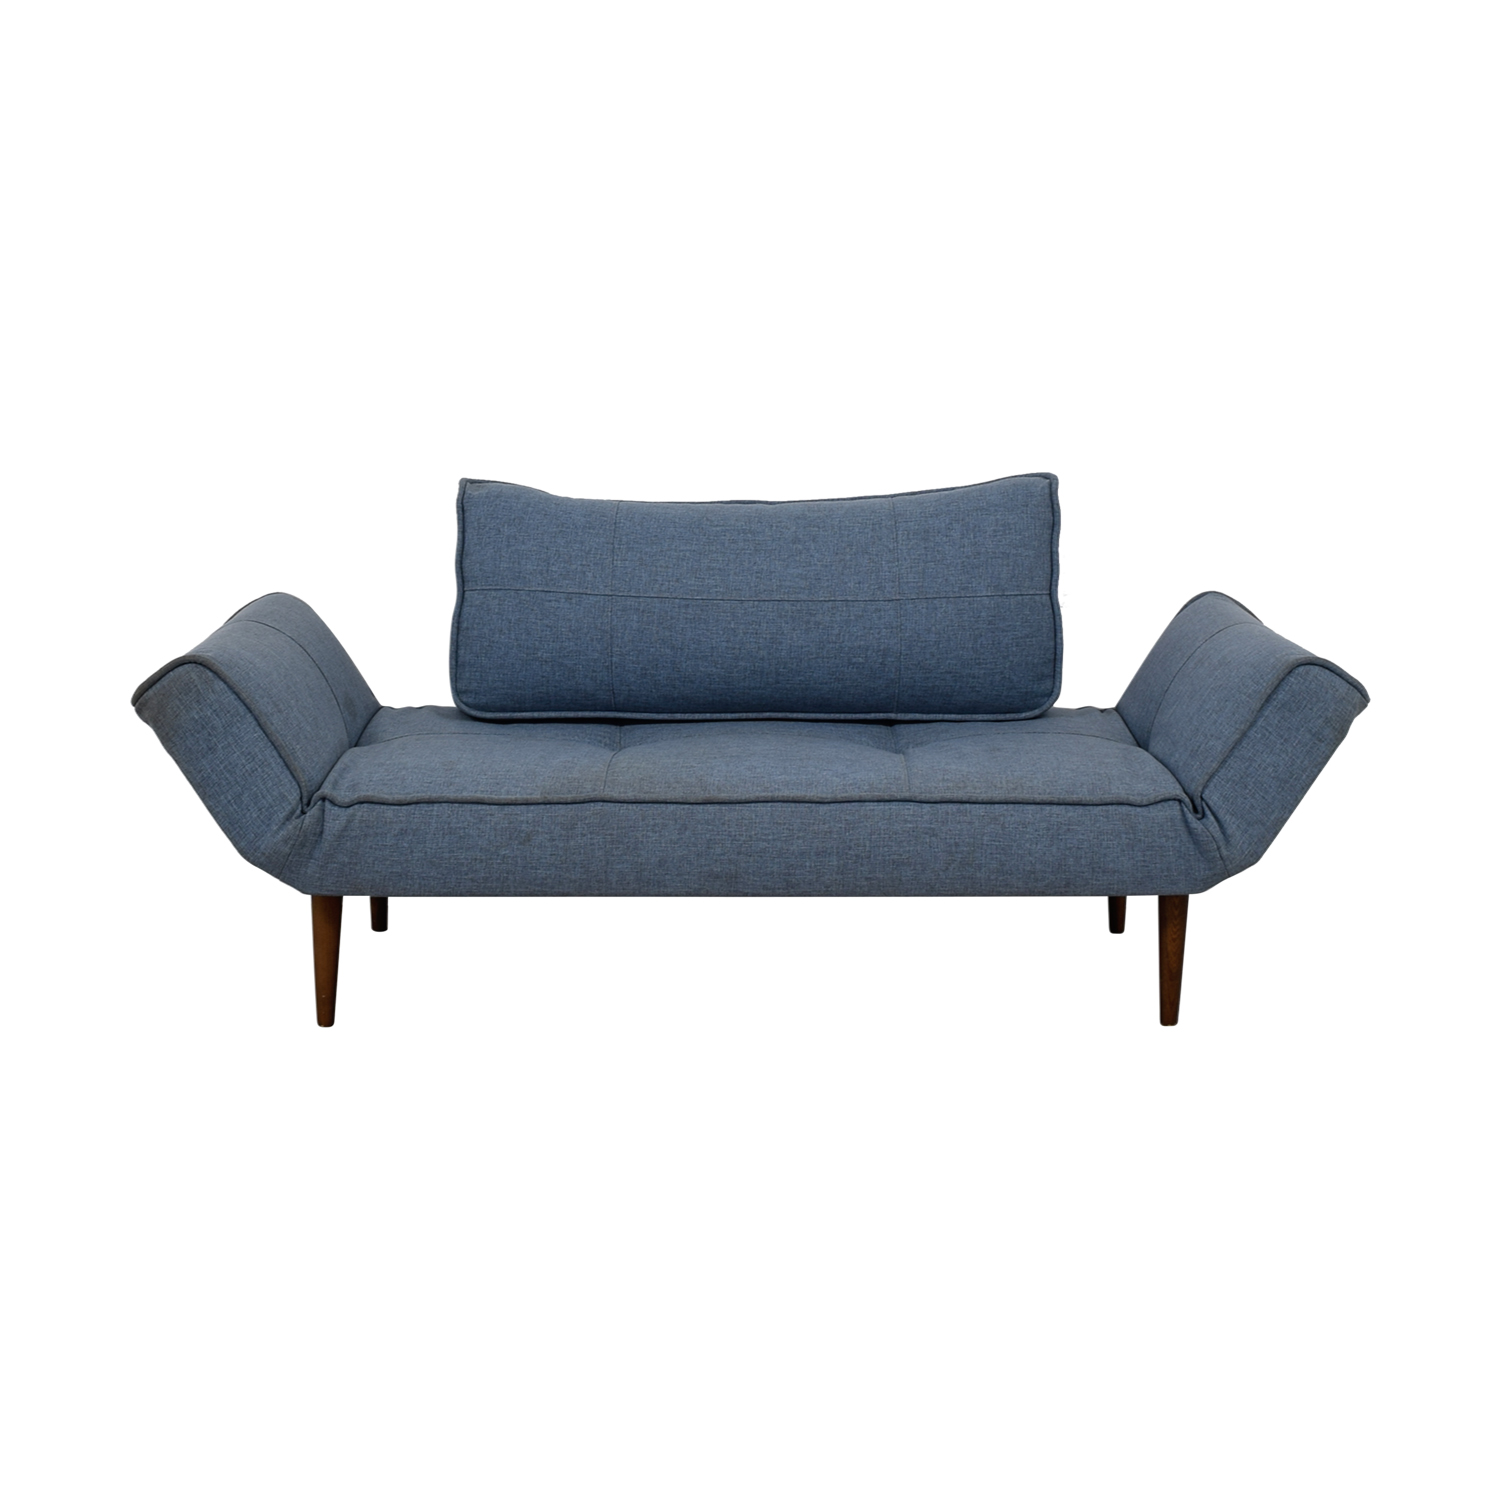 Blue Single Cushion Futon With Back Pillow Blue